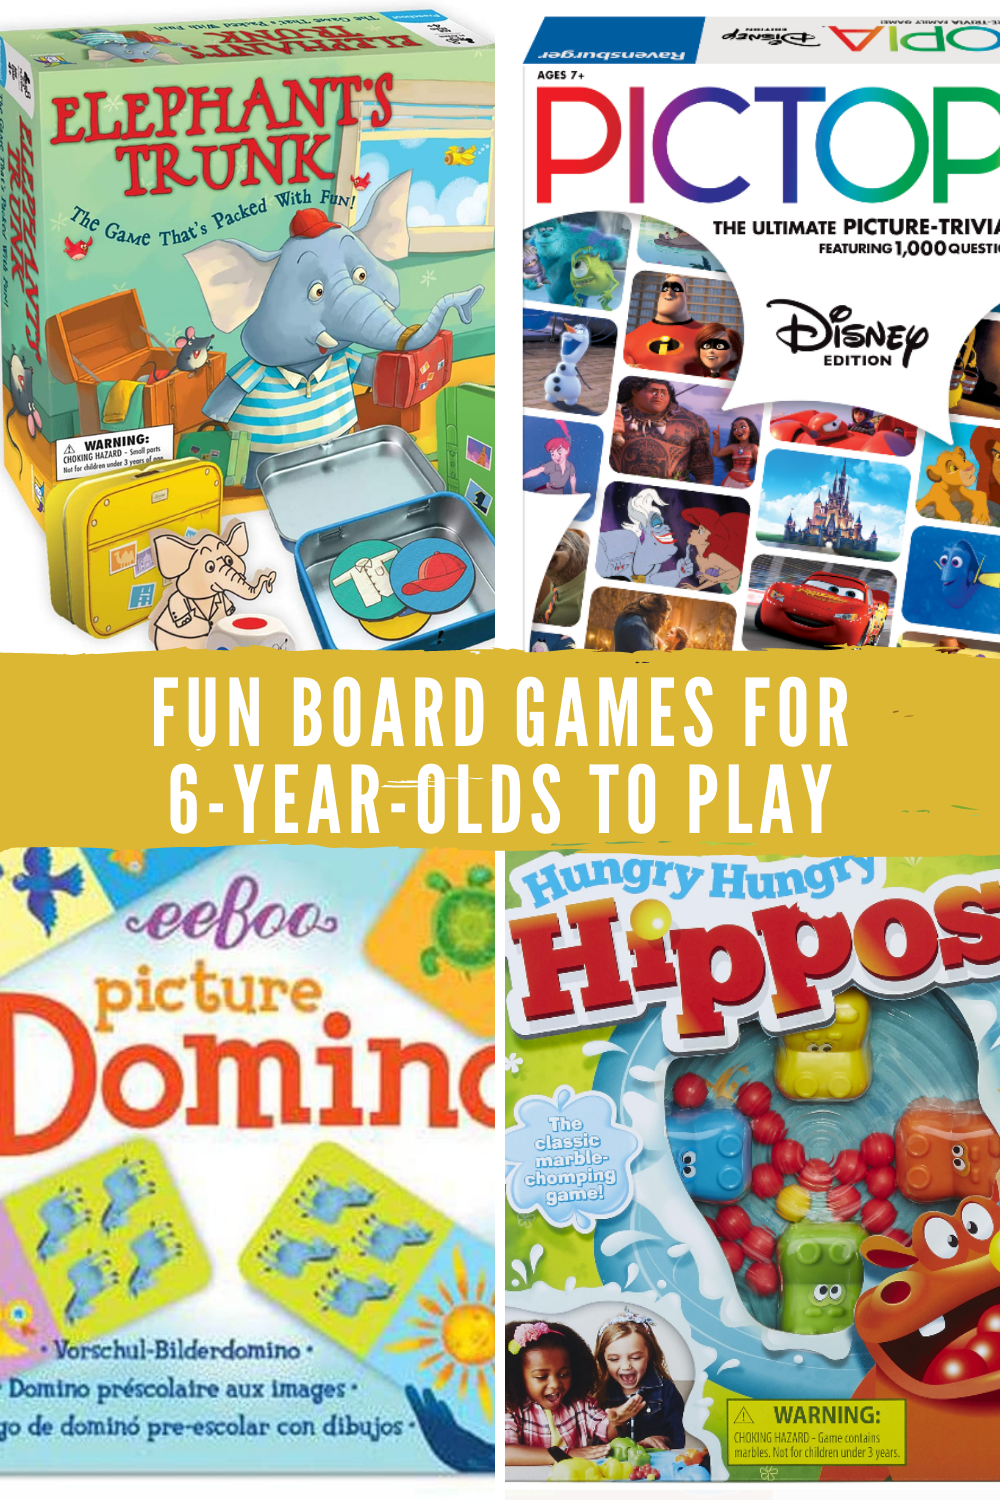 Fun Board Games for 6 Year Olds